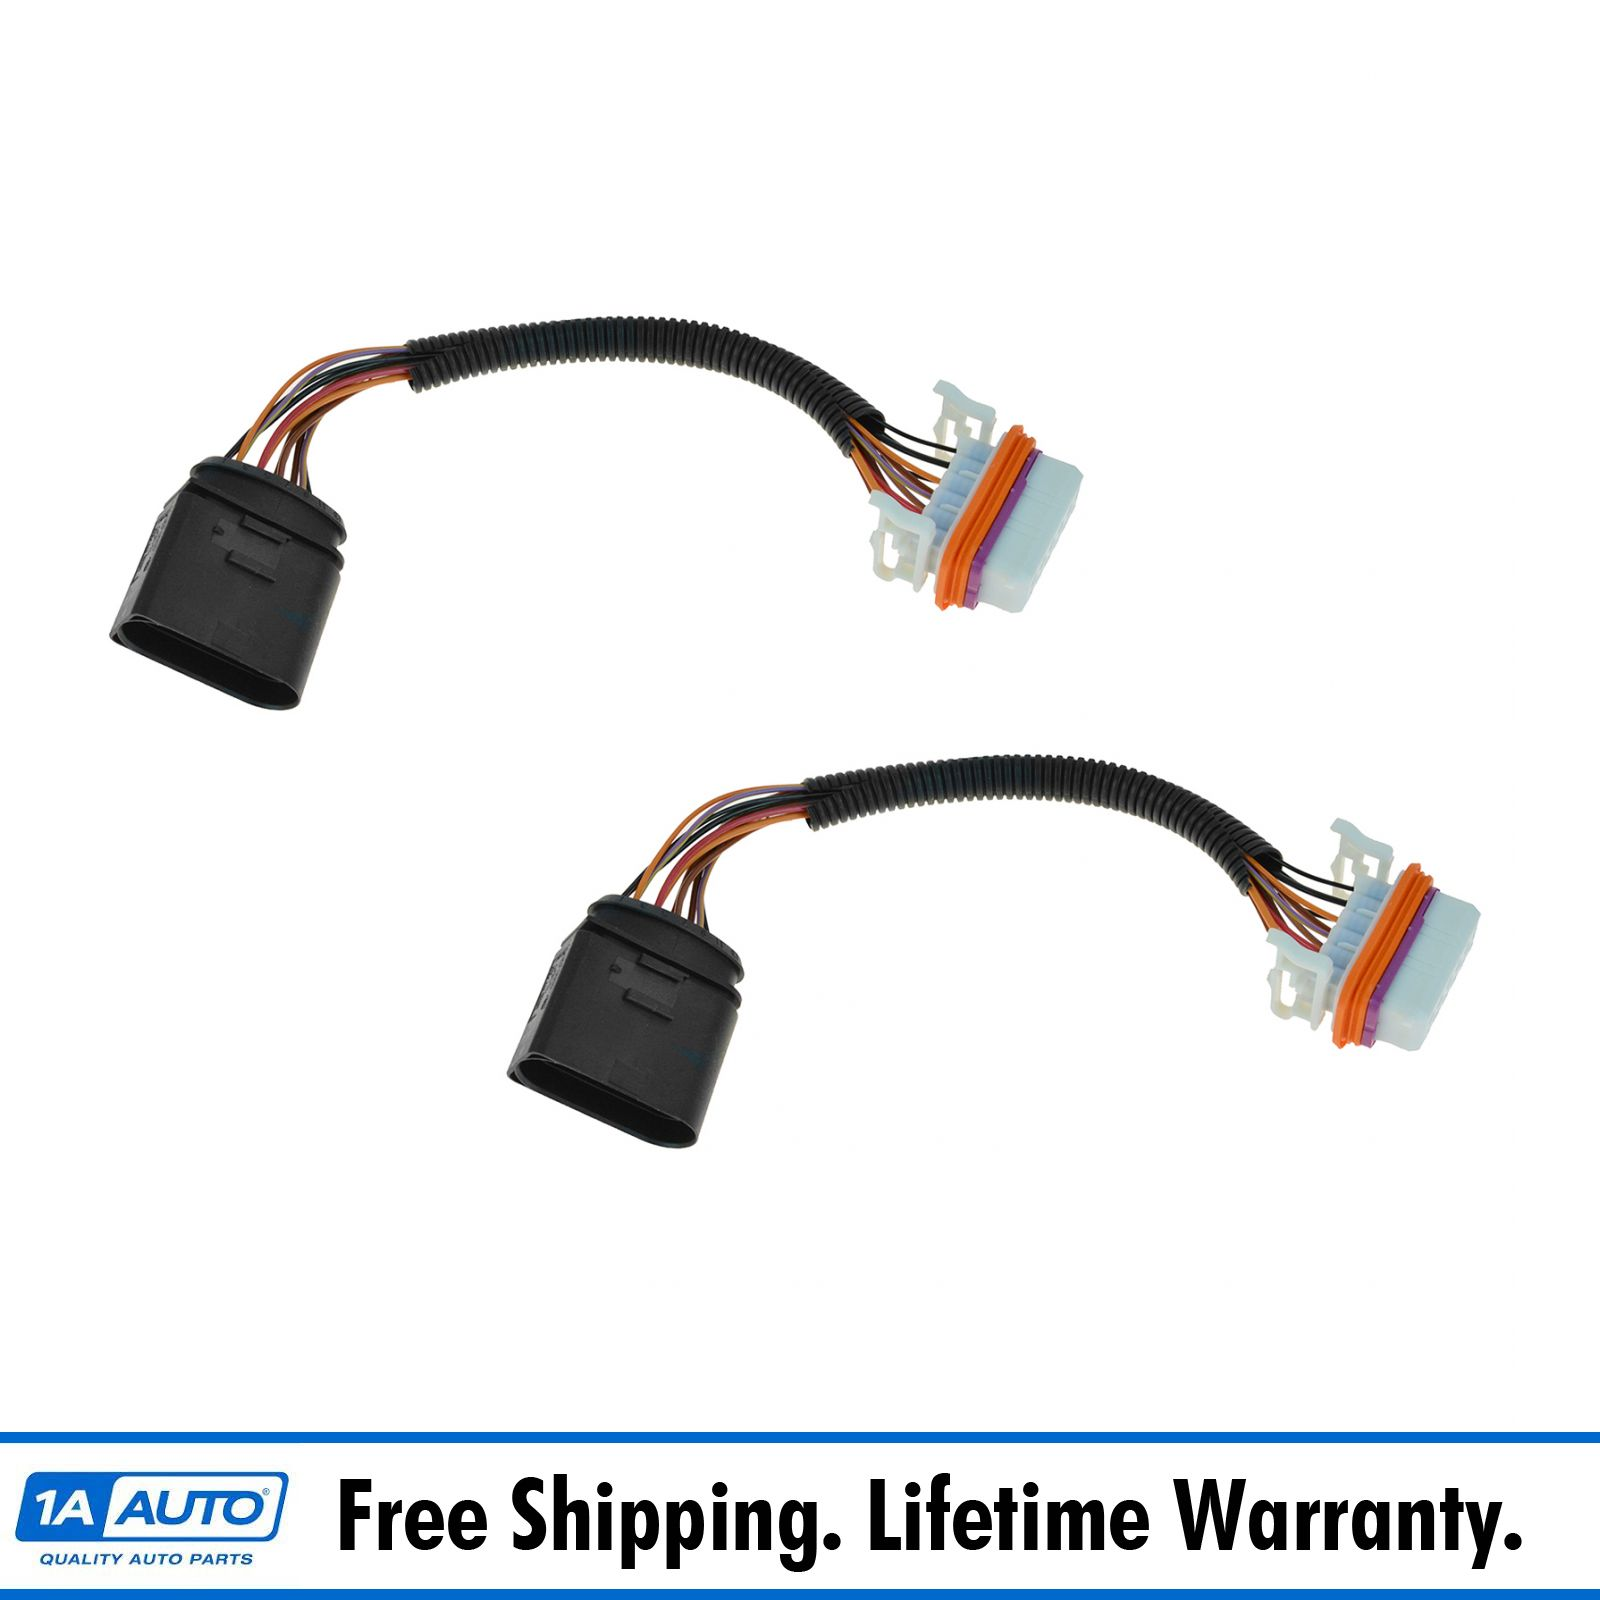 Vw Touareg Wire Harness Opinions About Wiring Diagram 2004 Passat Fuse Oem 7l6971071a Headlight Pair For 04 07 Volkswagen Rh Ebay Com